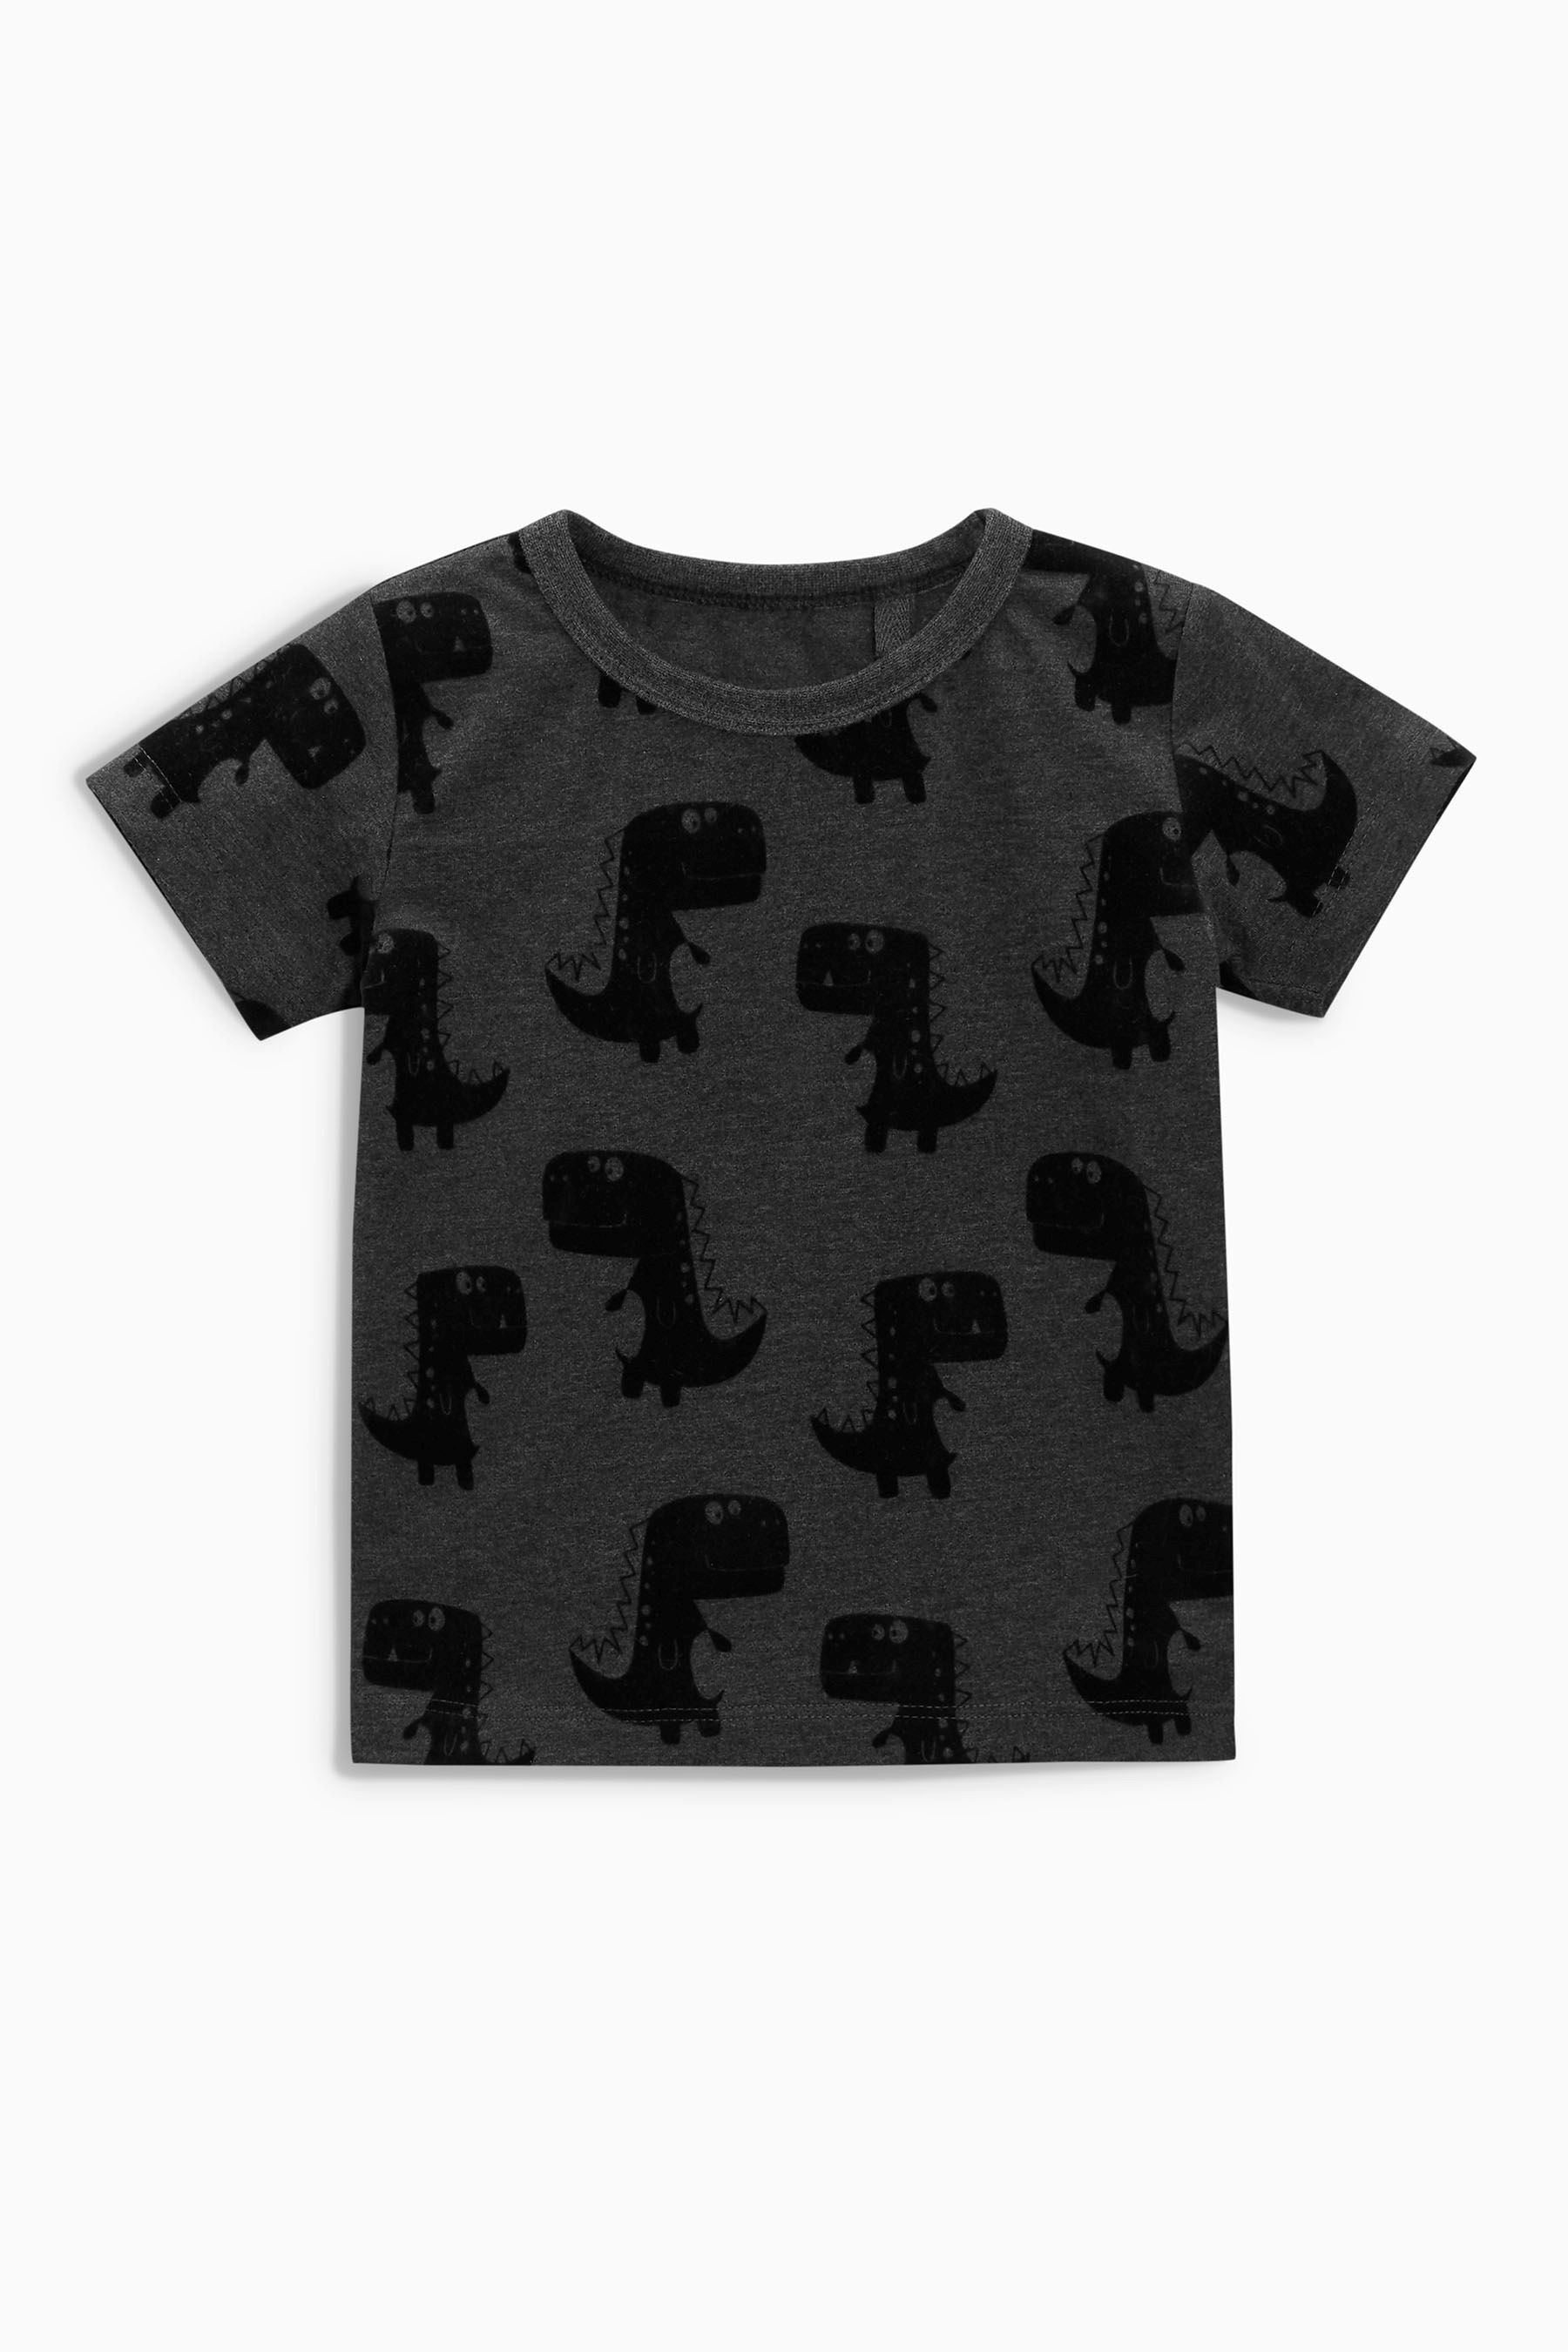 652510c1050f Buy Charcoal Dino Print Short Sleeve T-Shirt (3mths-6yrs) from the ...